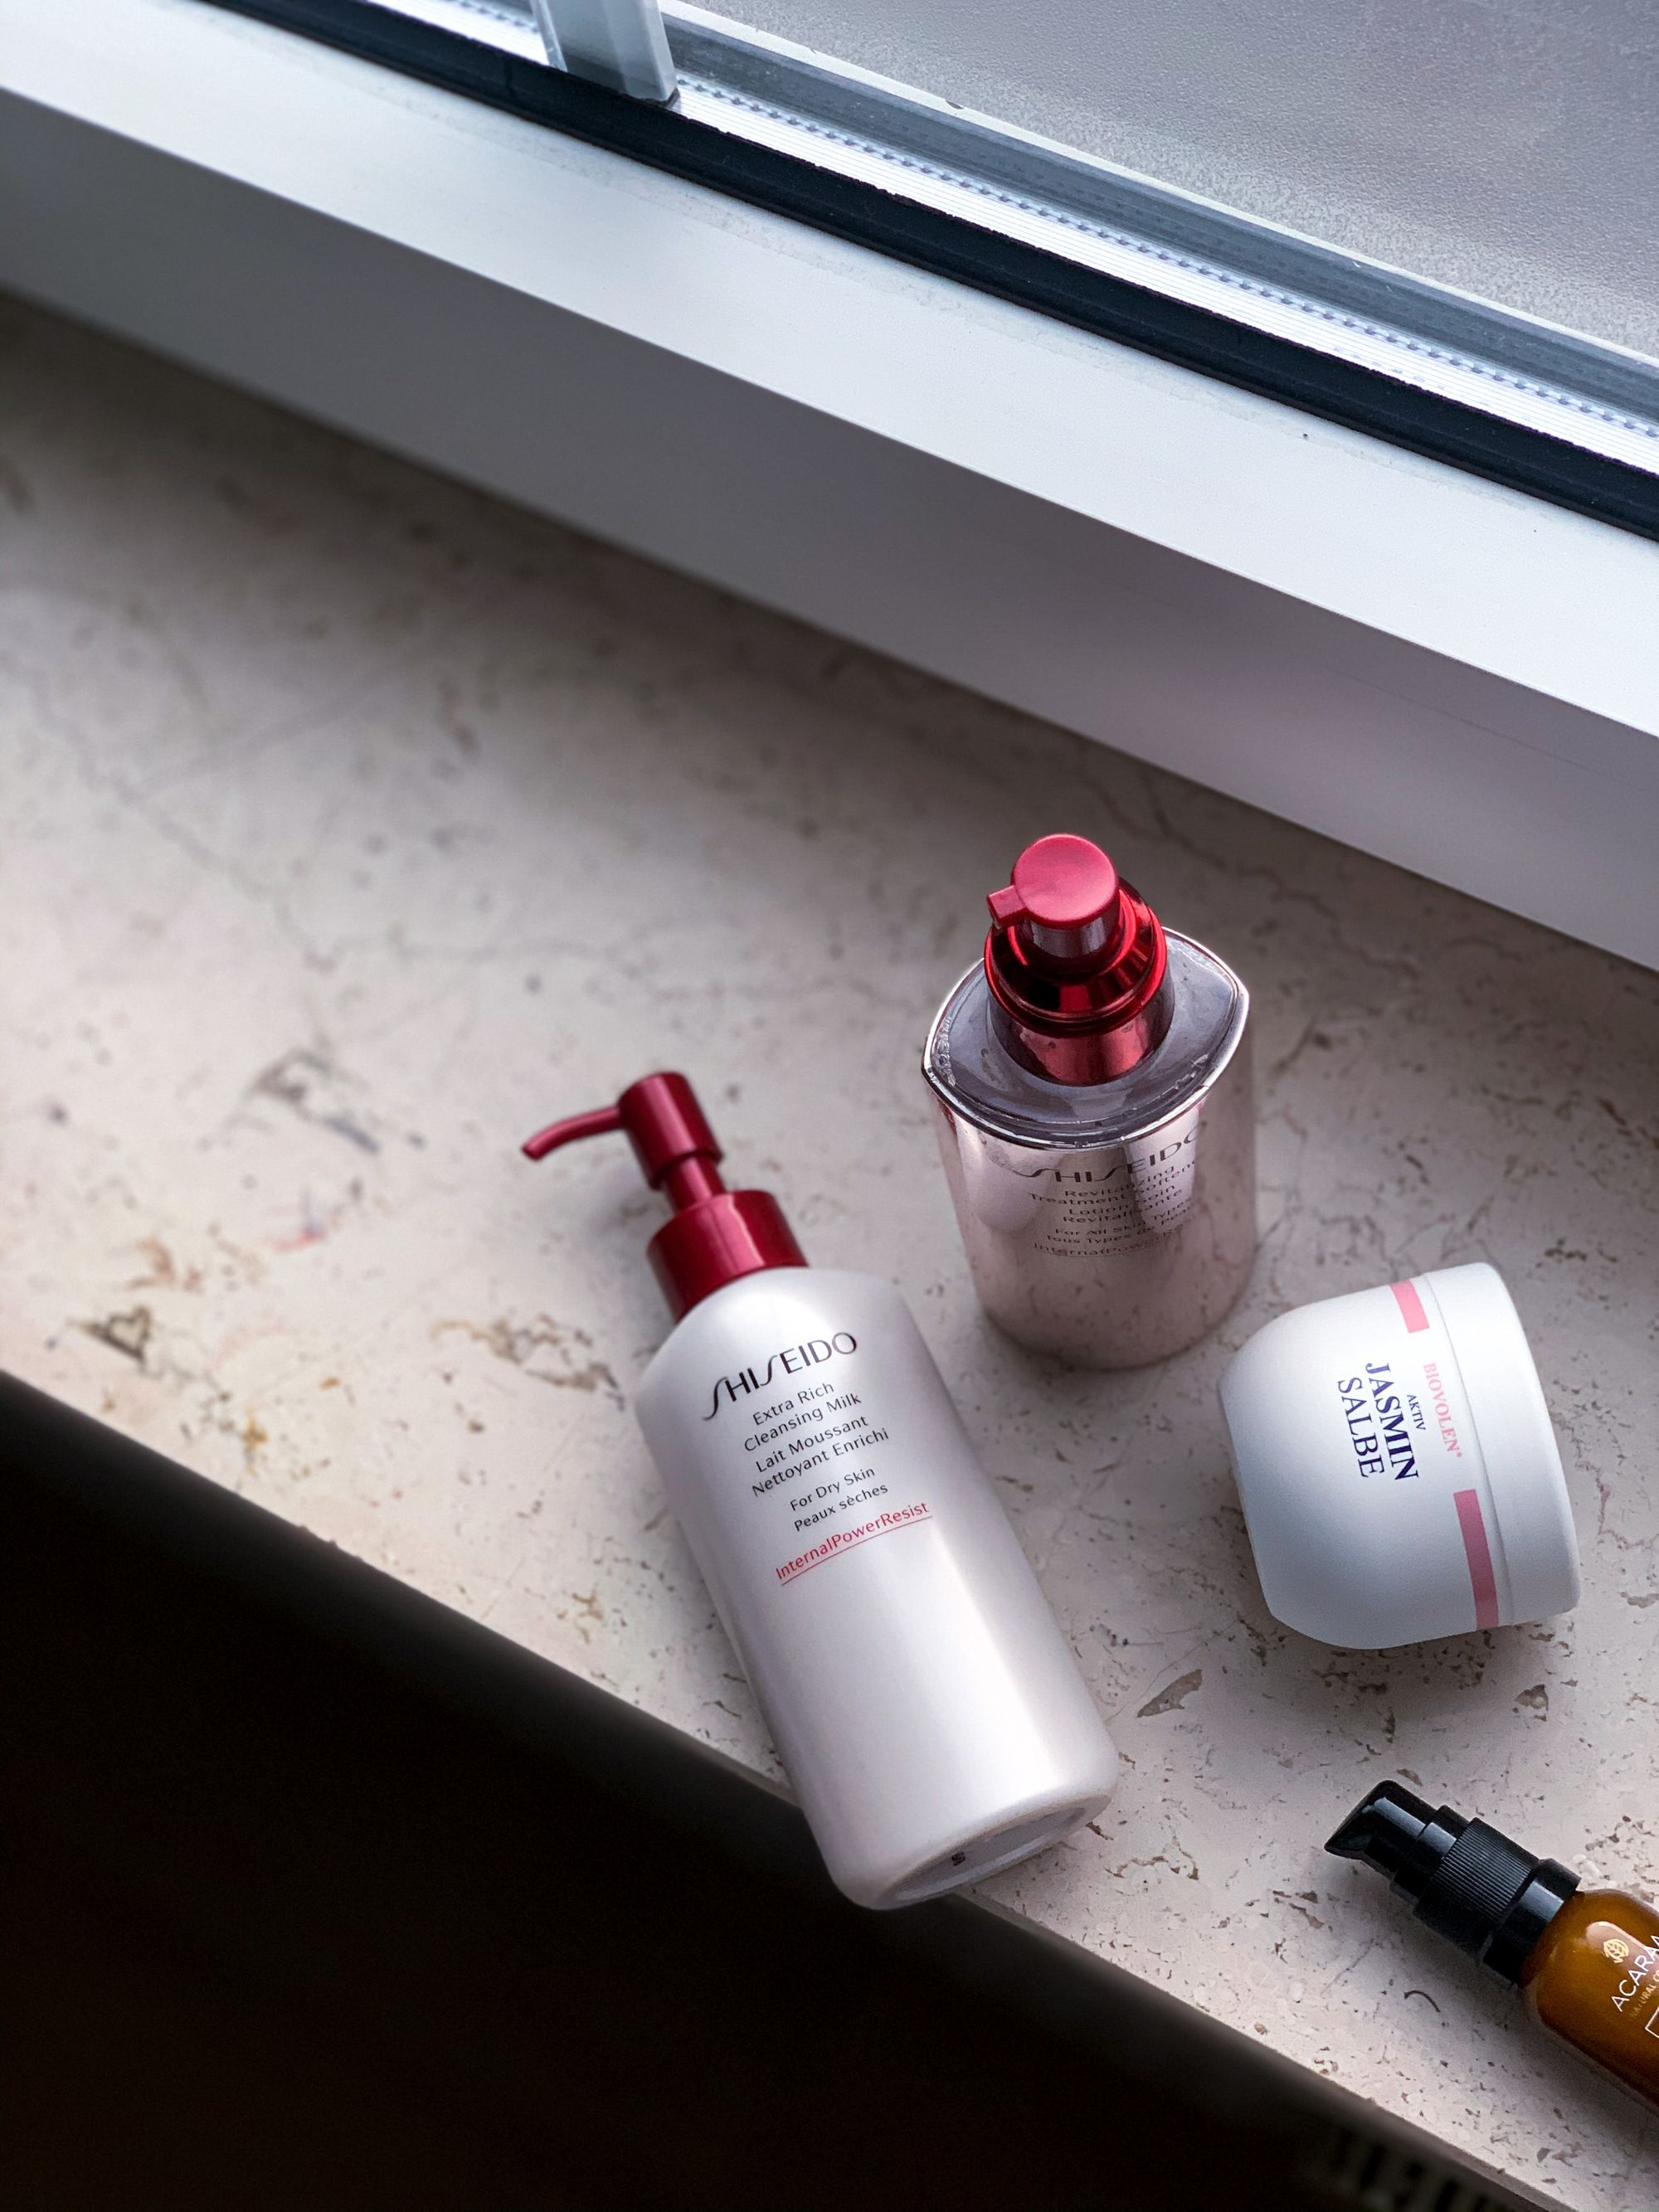 Shiseido Extra Rich Cleansing Milk Beautyroutine